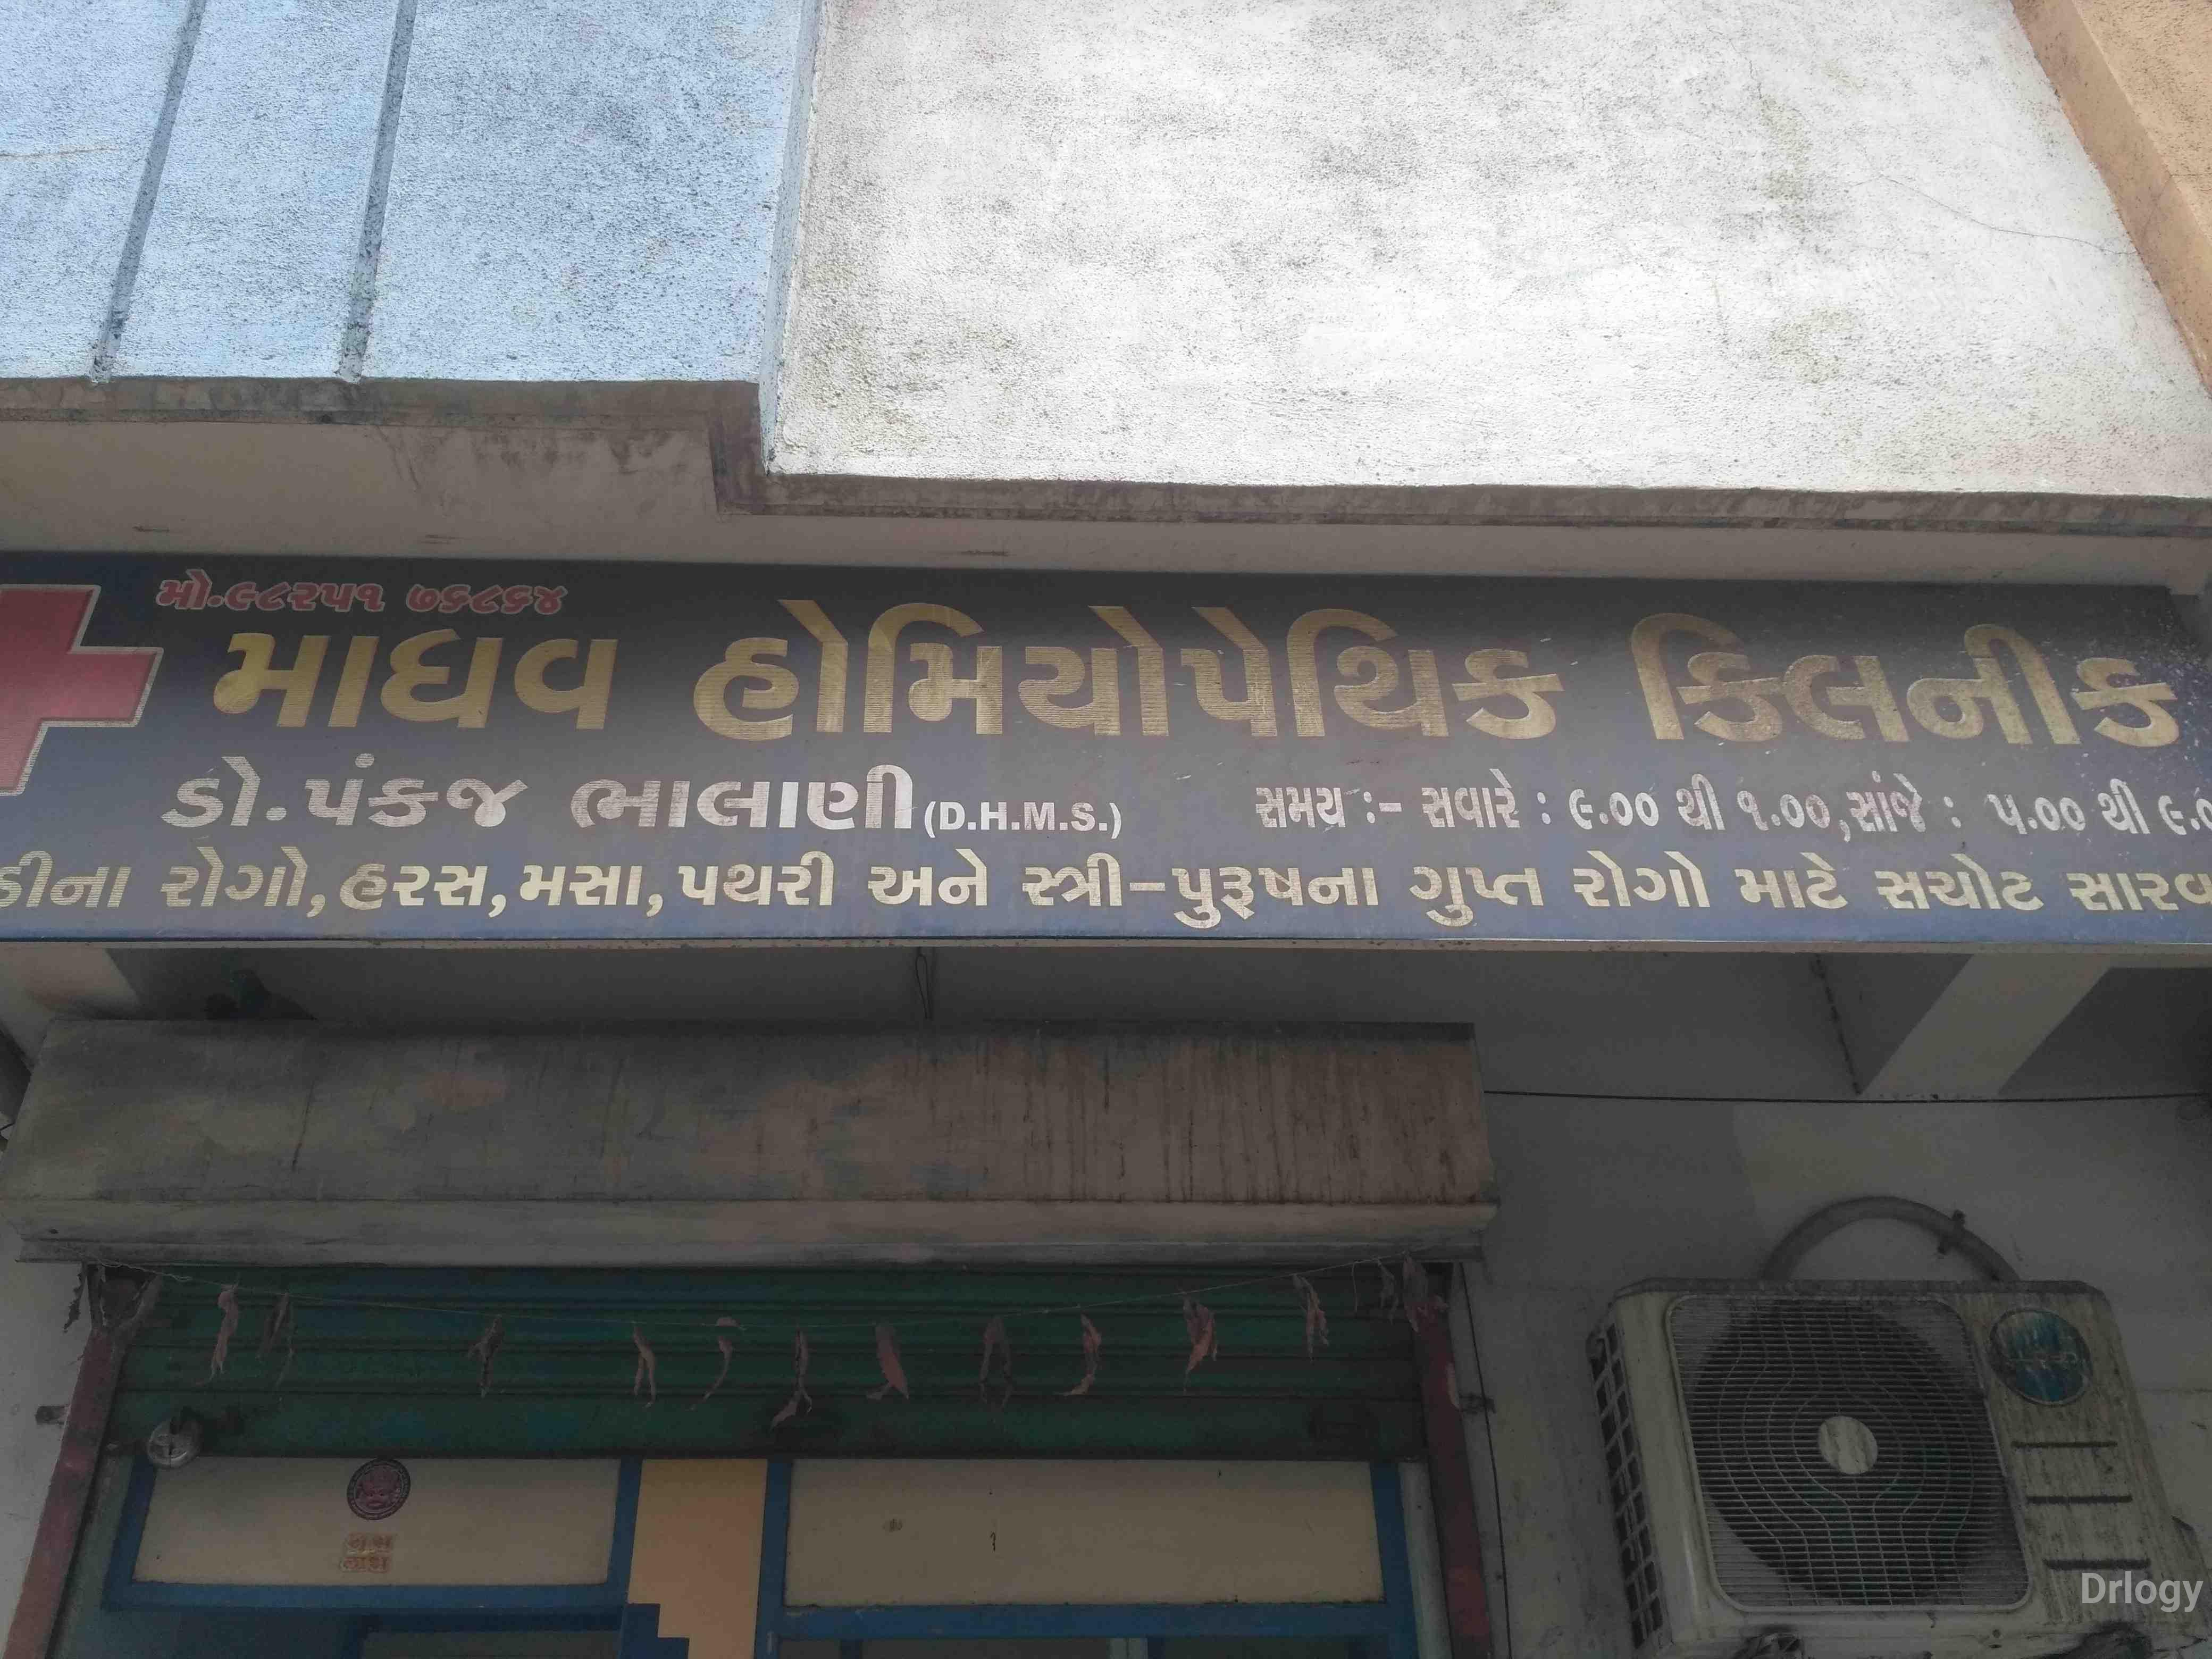 Madhav homeopathic clinic in Surat